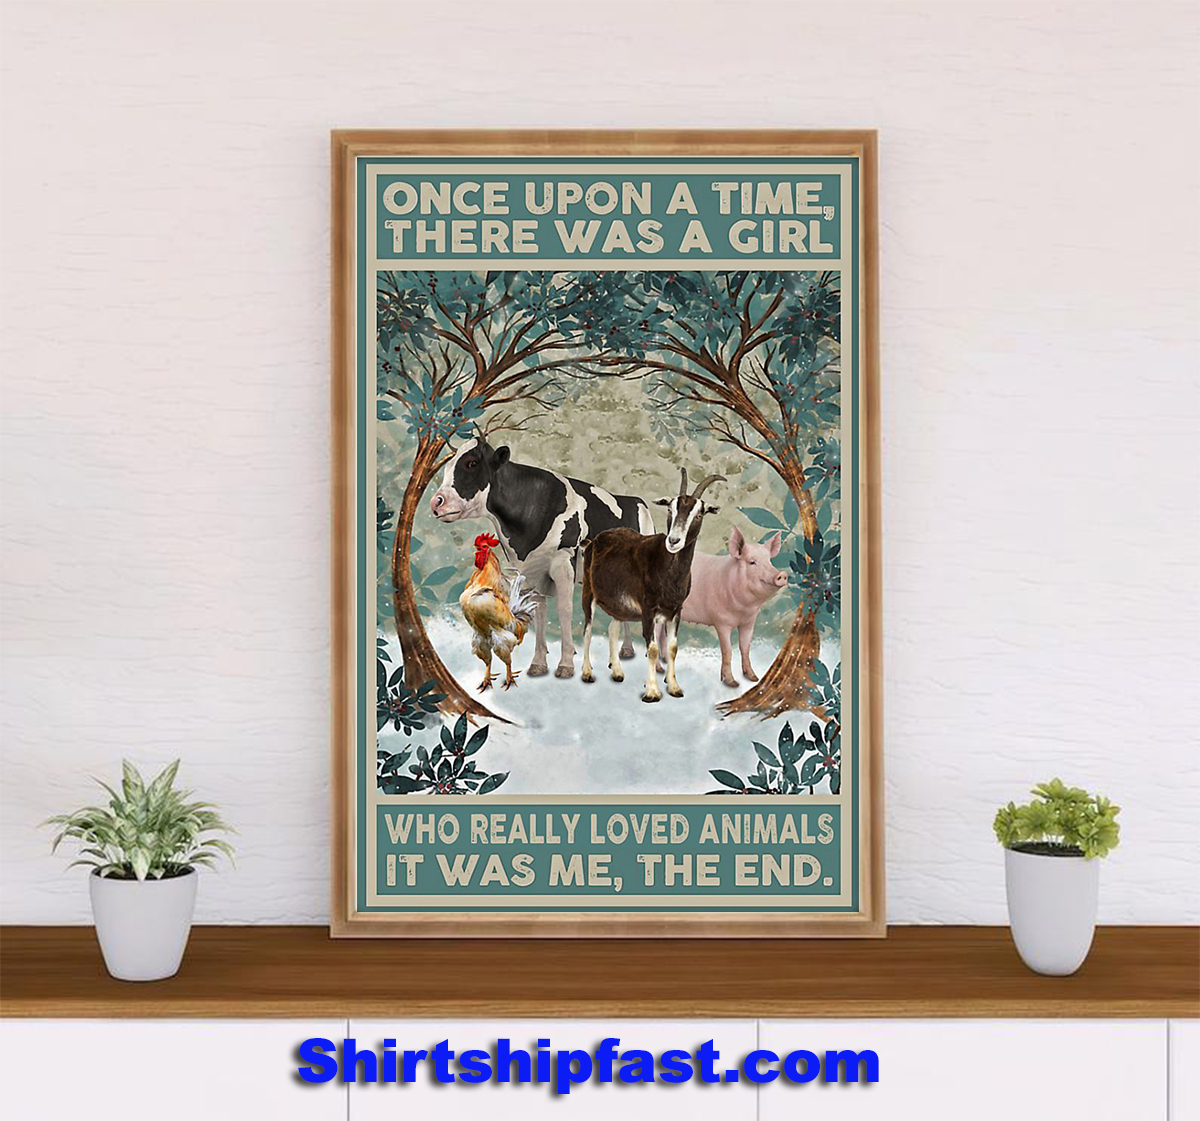 Once upon a time there was a girl who really loved animals poster - Picture 2